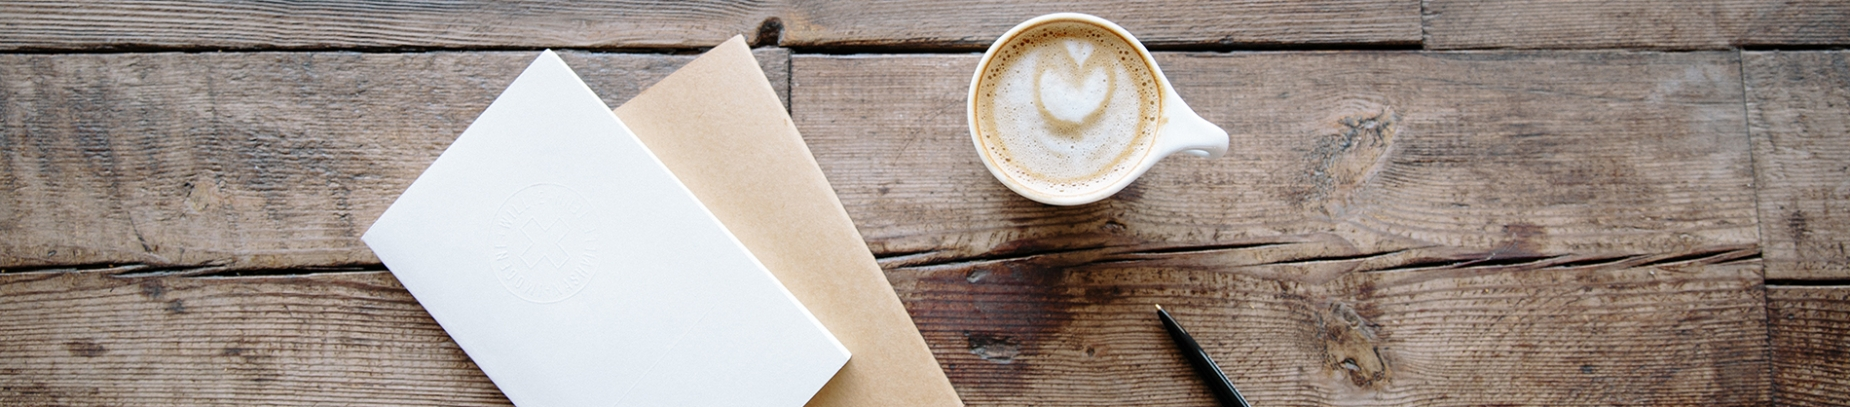 Wooden table with a blank card and envelope and a cup of coffee